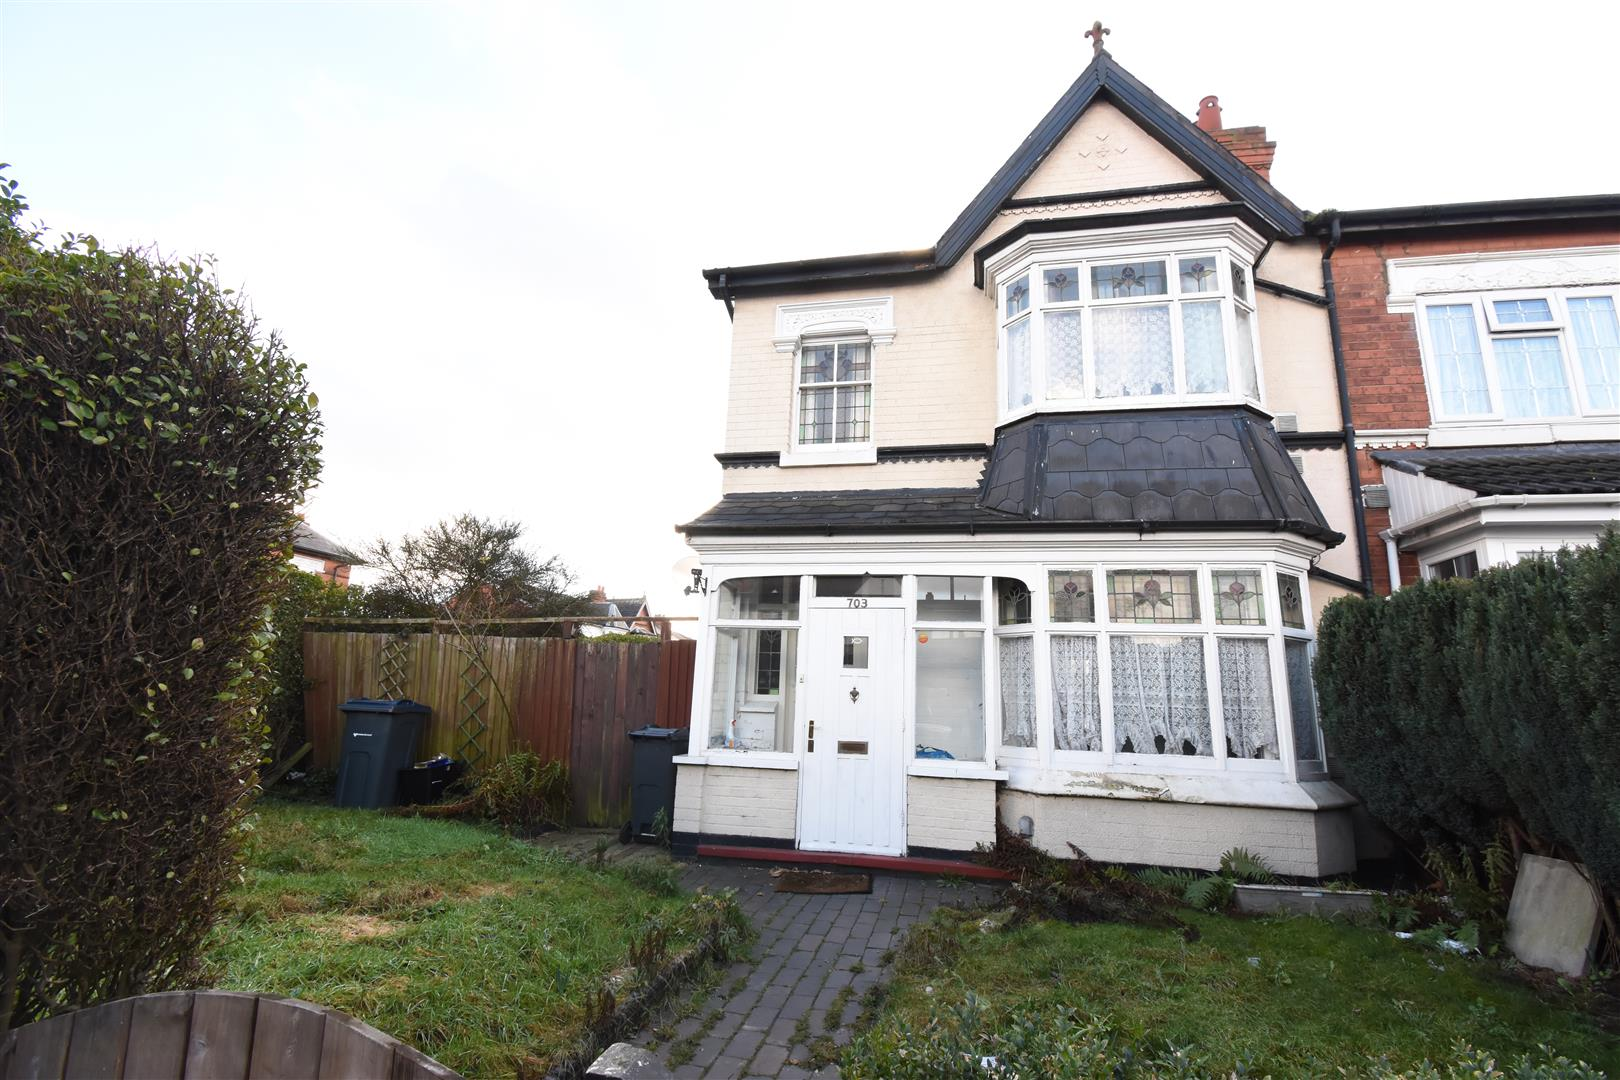 3 bed house for sale in Washwood Heath Road, Ward End, Birmingham - Property Image 1